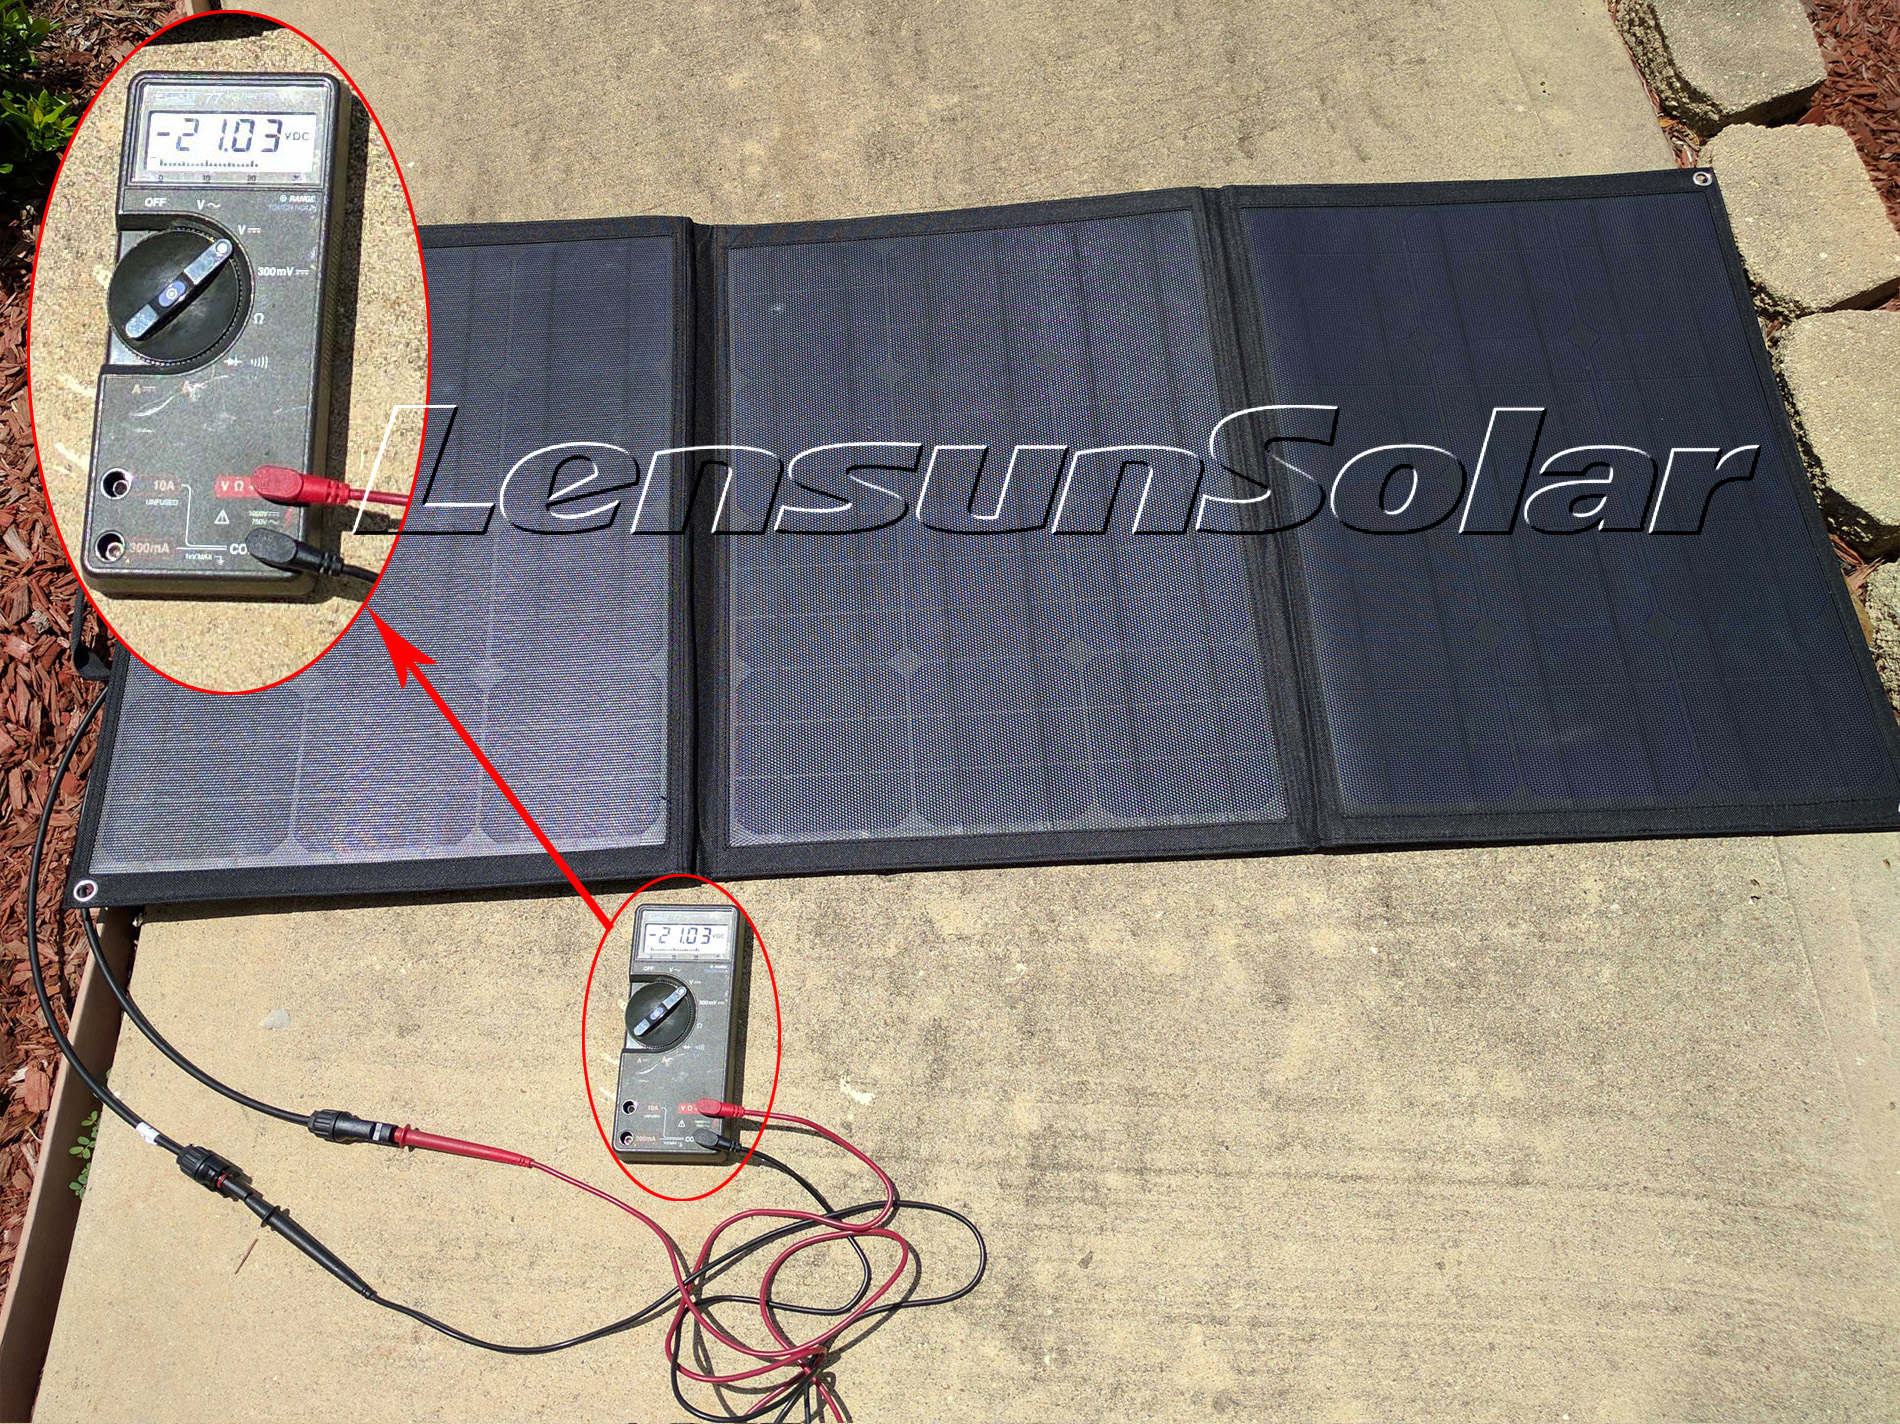 How to Use Multimeter to Measure Volts and Amps of Solar